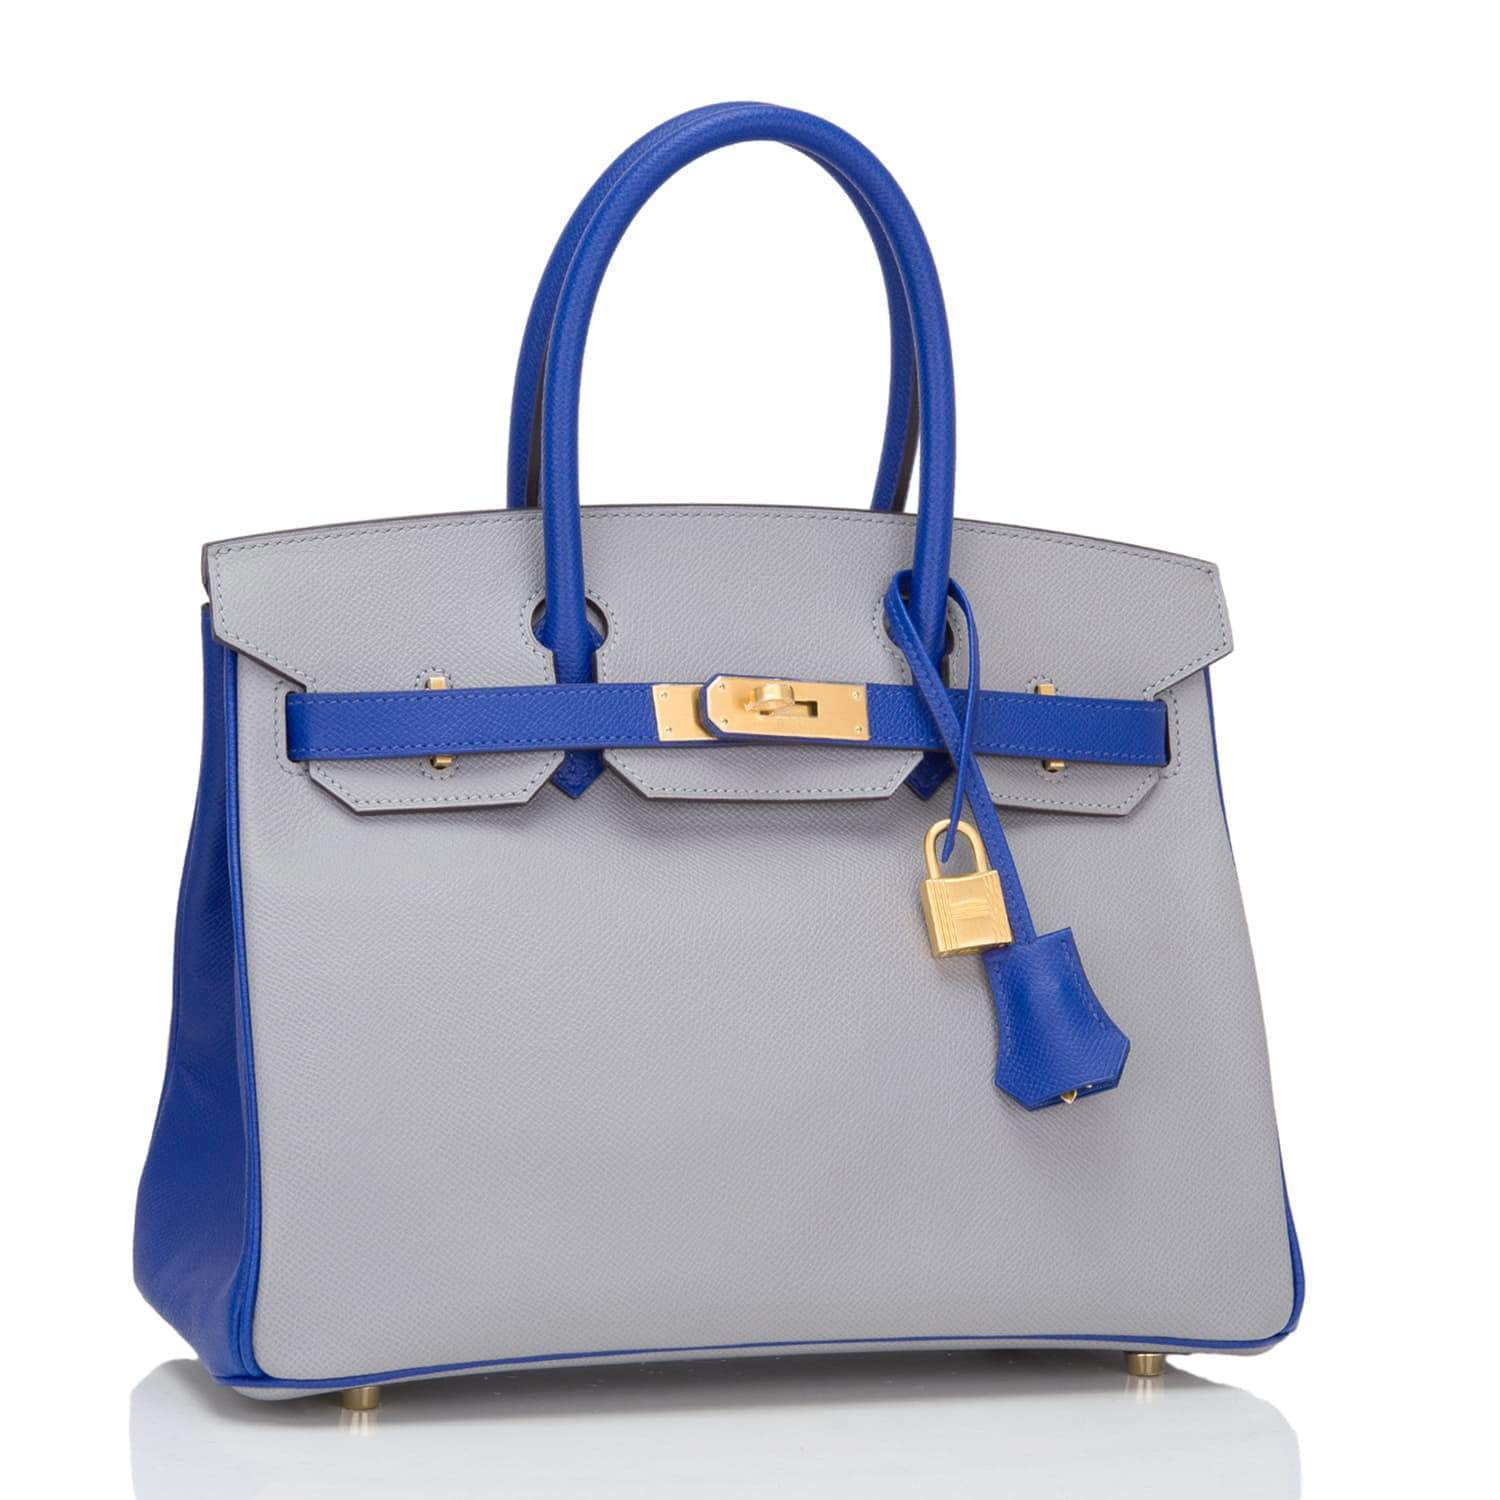 Hermes Hss Gris Mouette And Blue Electric Epsom Birkin 30Cm Brushed Gold Hardware Handbags